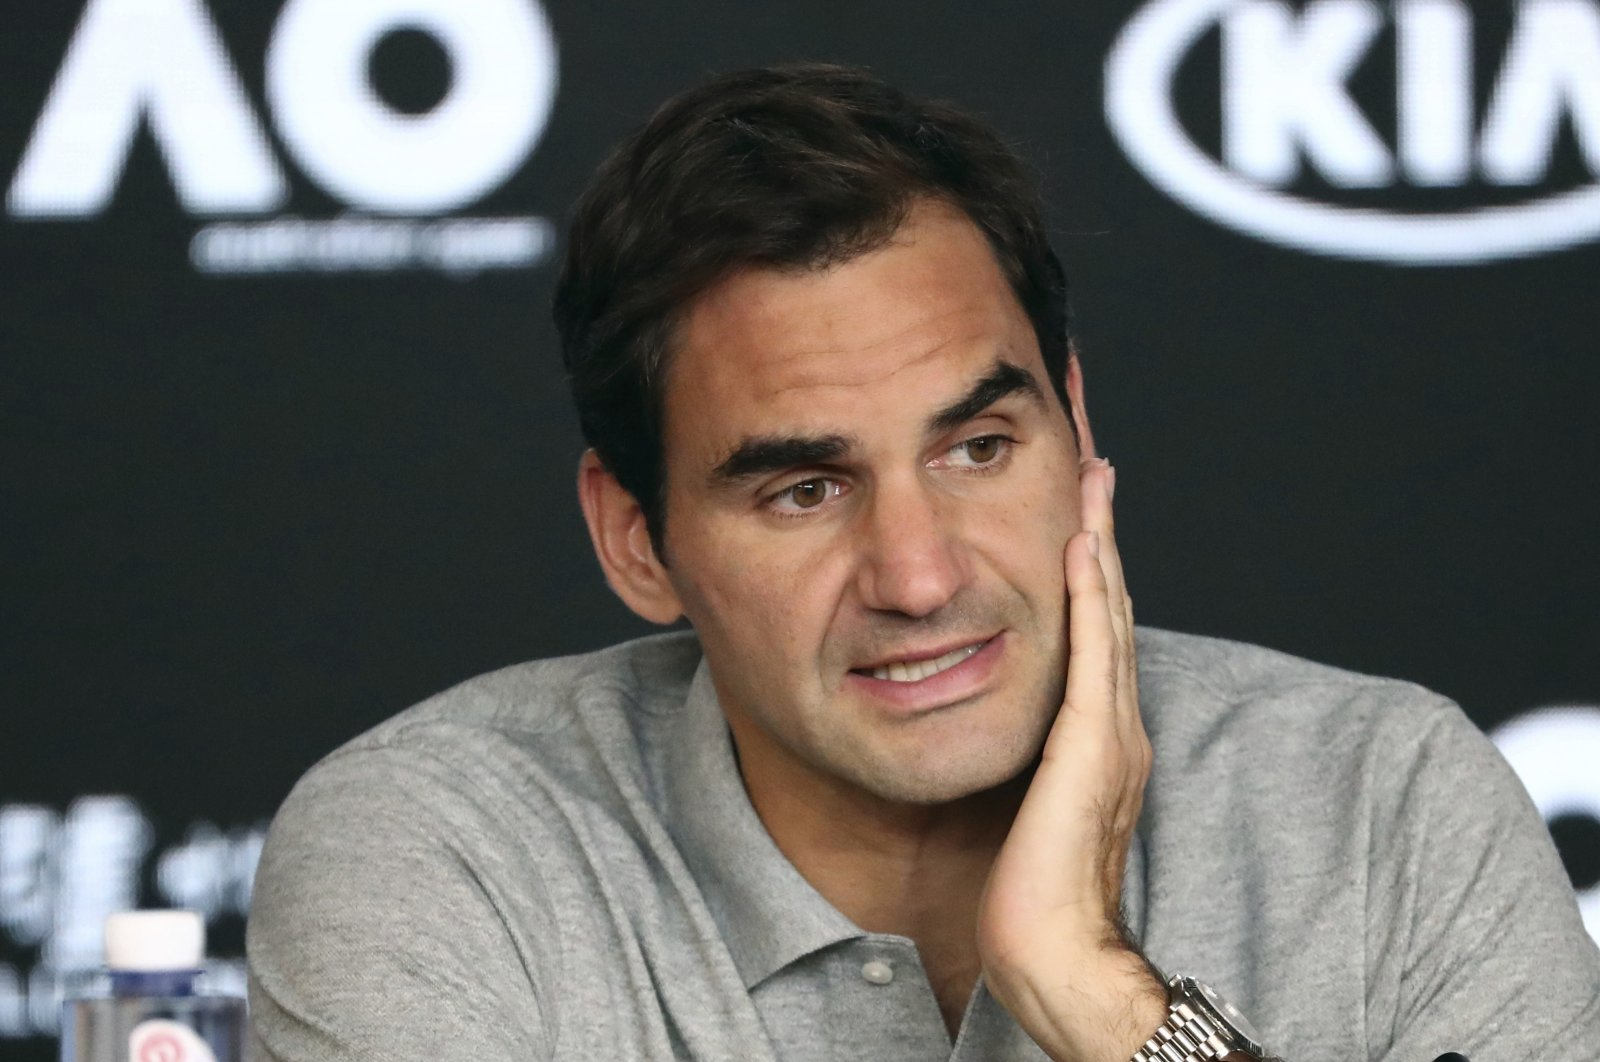 Switzerland's Roger Federer speaks during a press conference following his semifinal loss to Serbia's Novak Djokovic at the Australian Open in Melbourne, Australia, Jan. 30, 2020. (AP Photo)